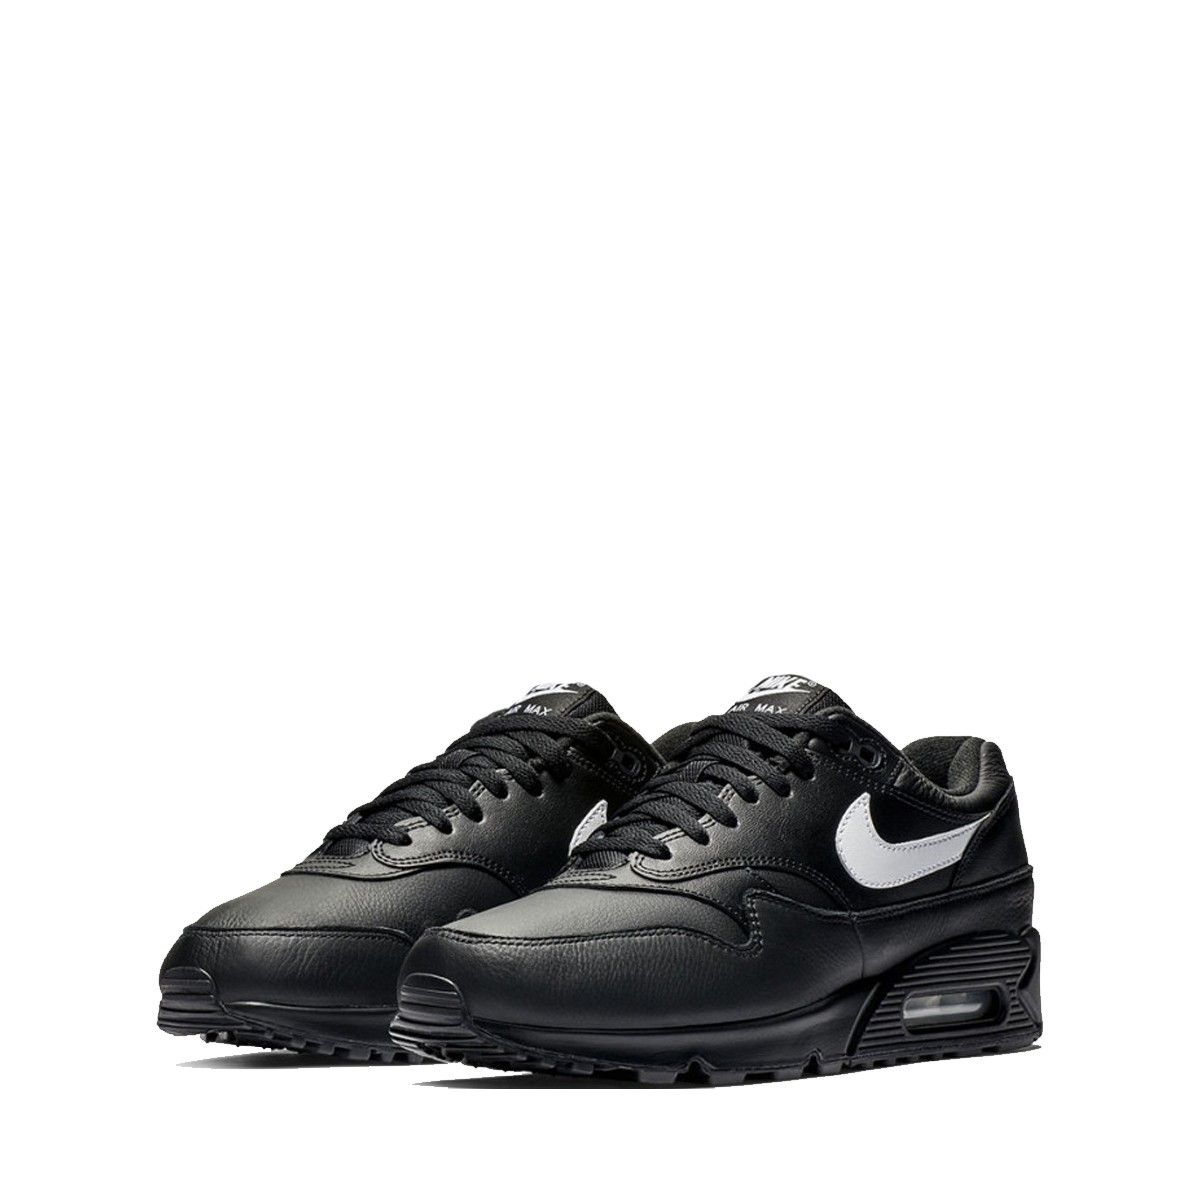 Basket Nike AIR MAX 90 1 - Ref. AJ7695-001 - Pegashoes 4ca62cd766a44